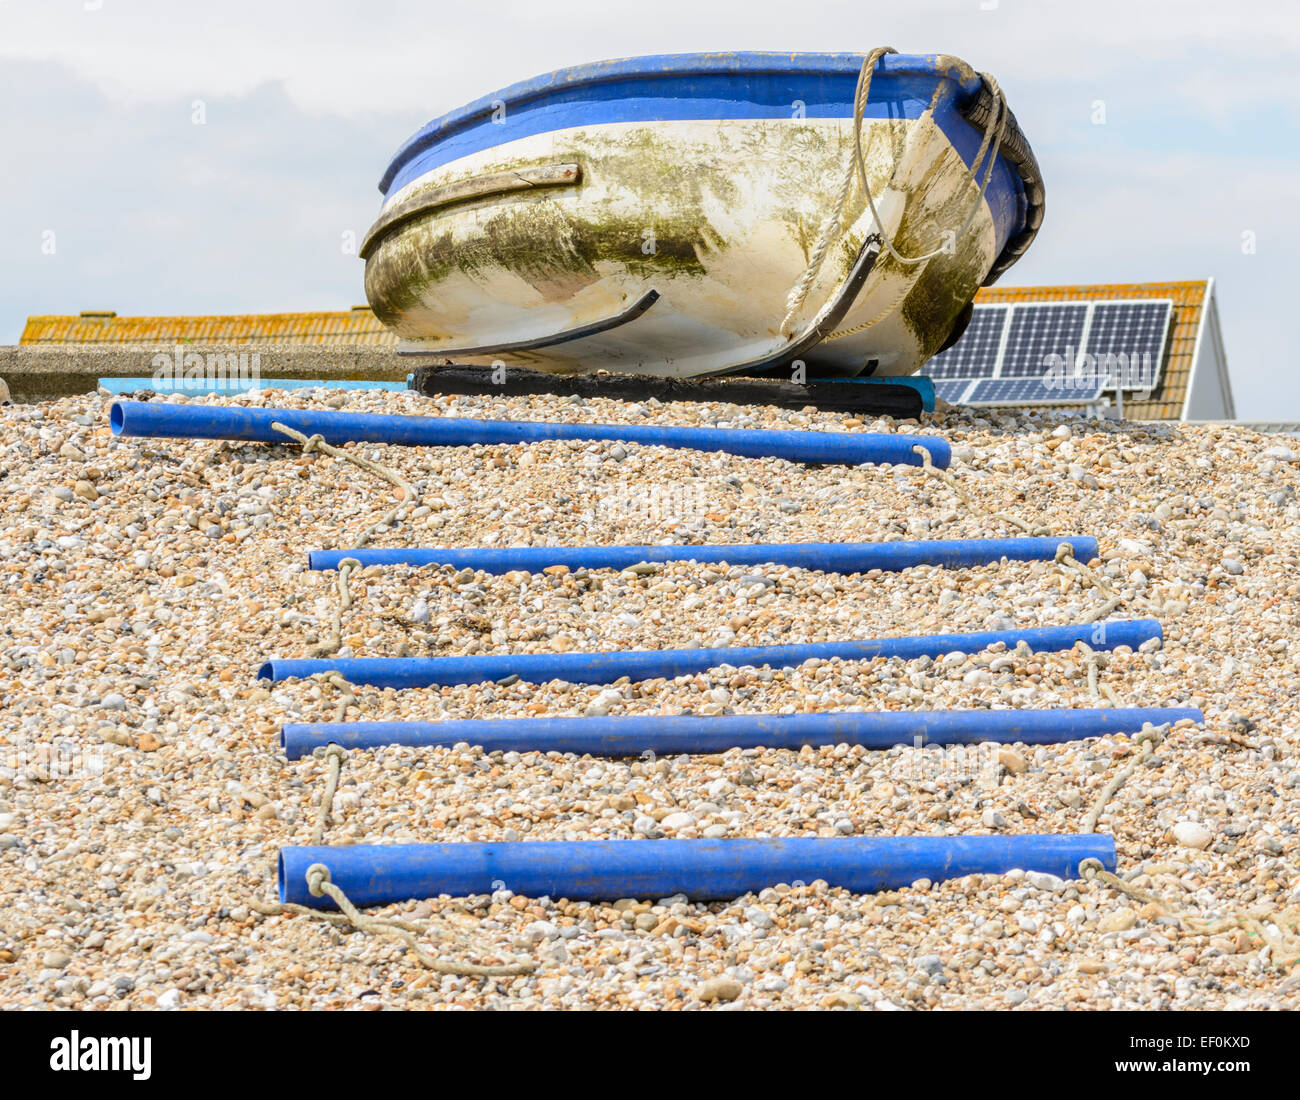 Boat rollers and a boat on a shingle beach. - Stock Image